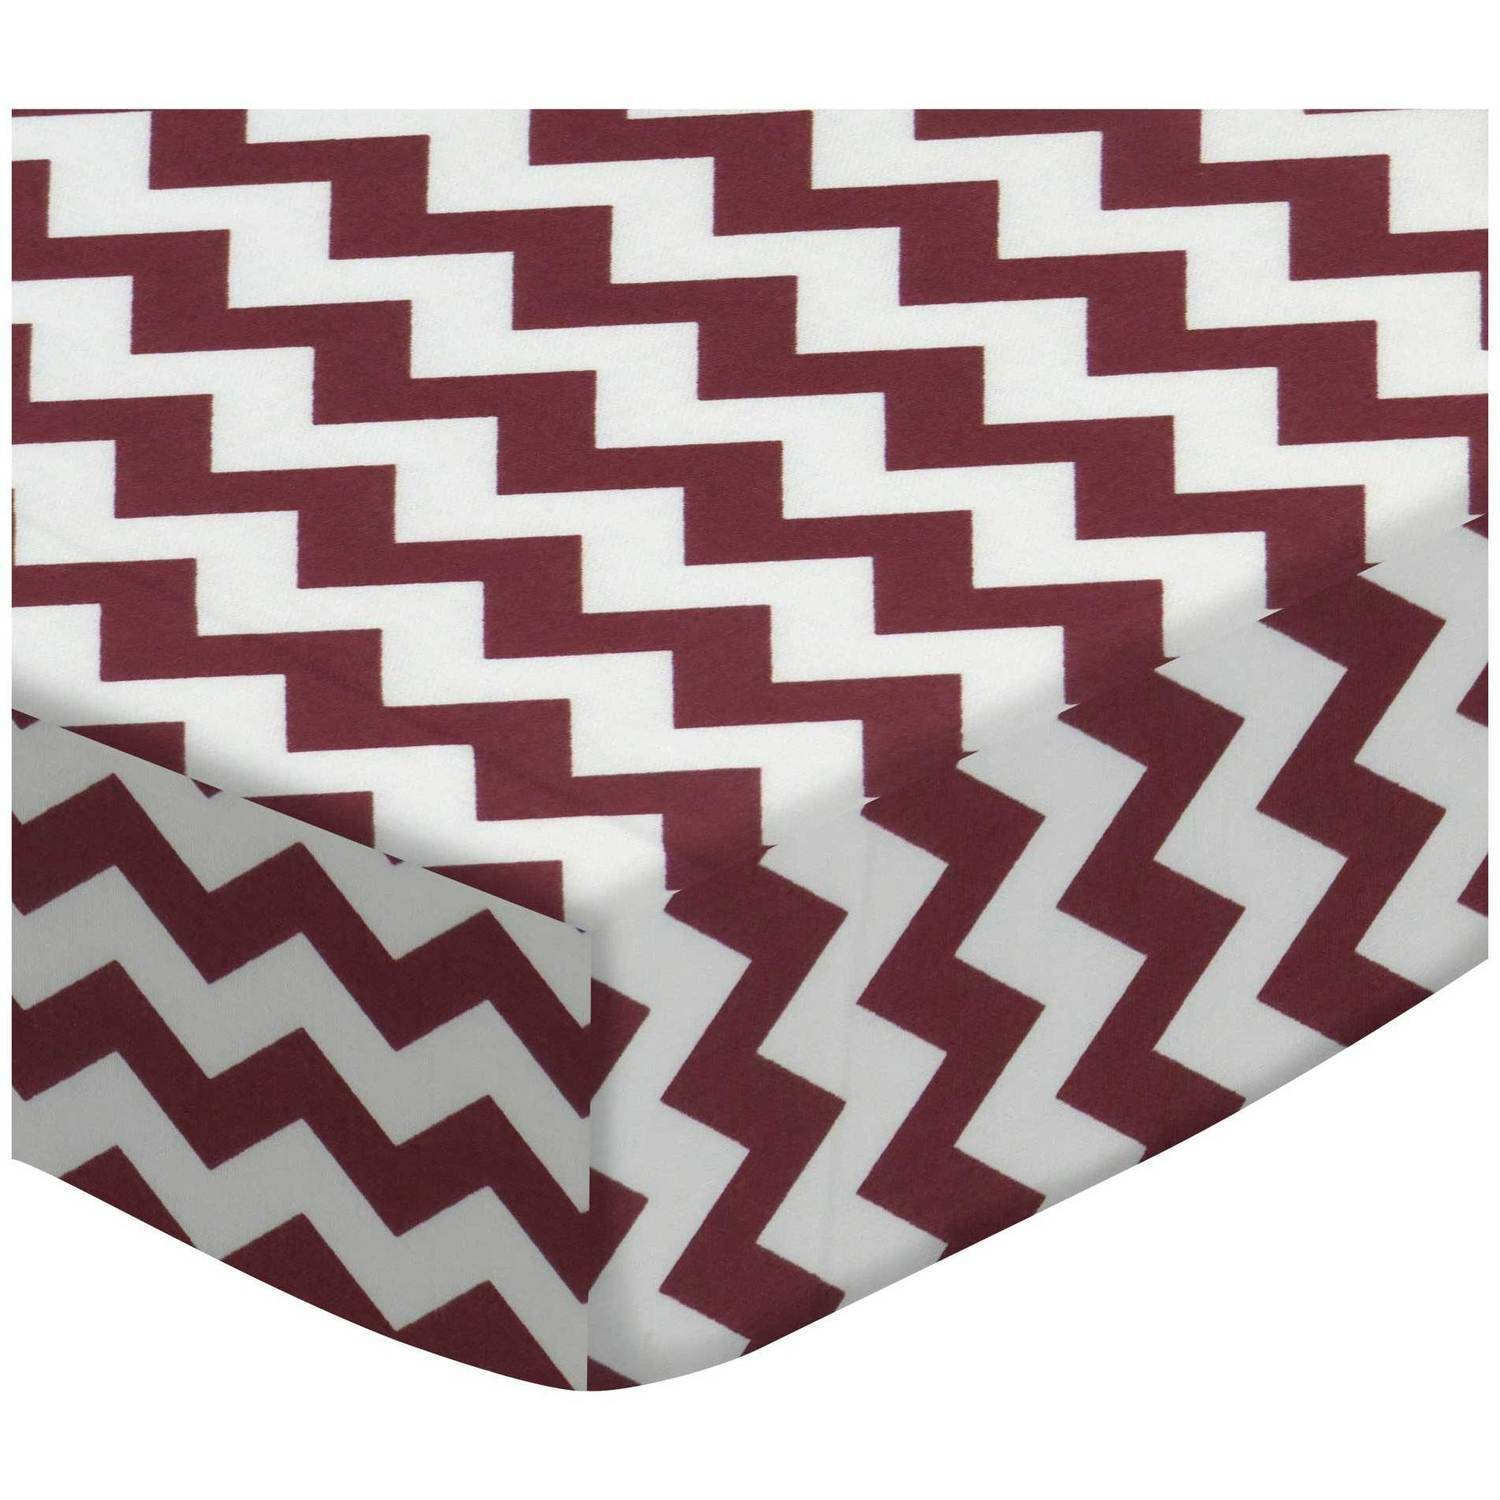 SheetWorld Fitted Pack N Play (Graco) Sheet - Burgundy Chevron Zigzag